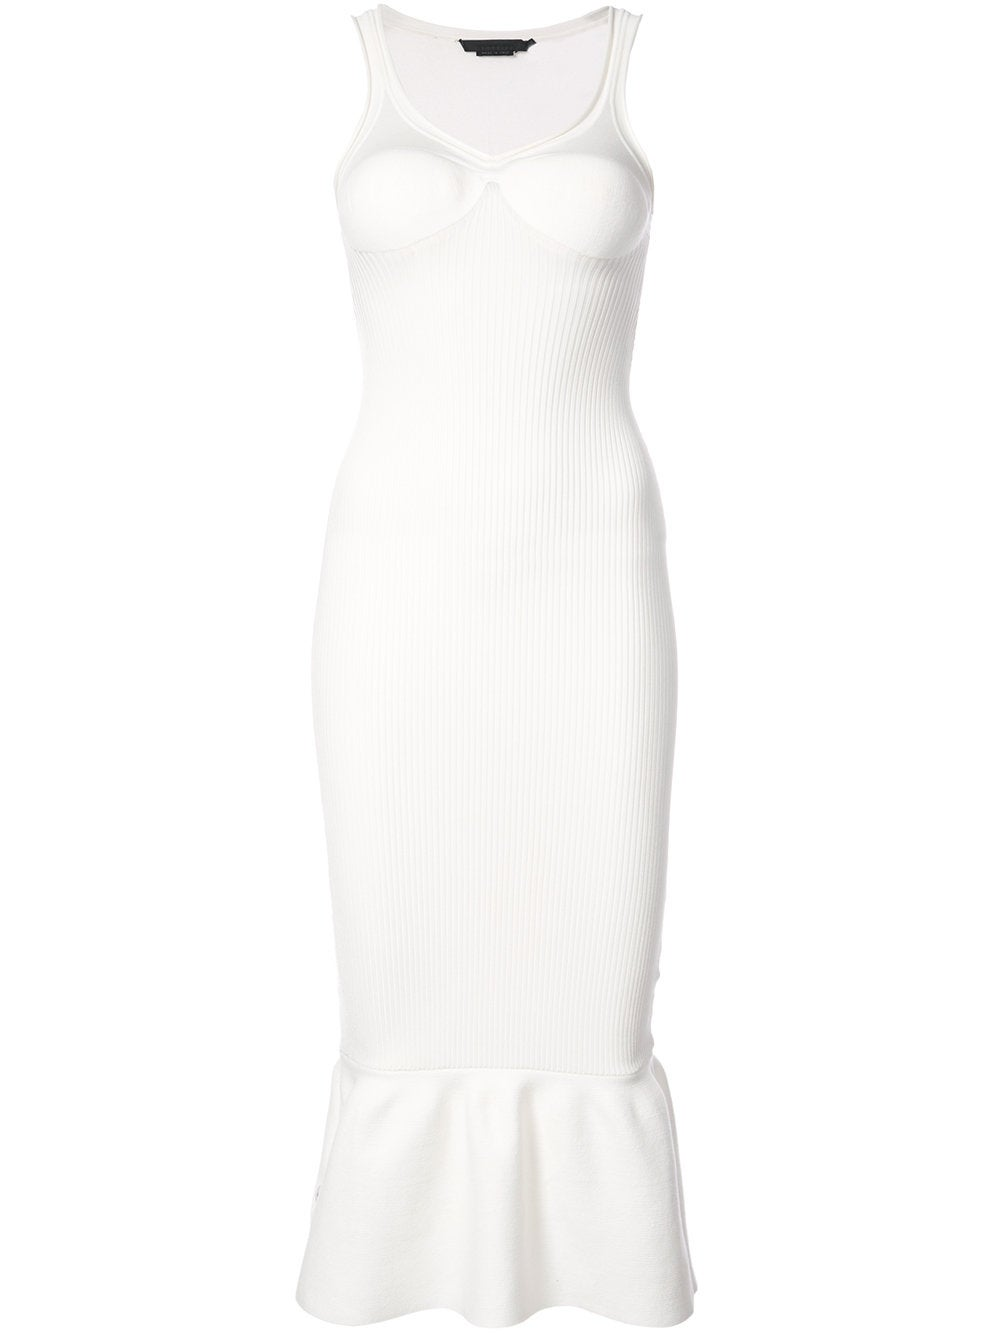 White Peplum Hem Bodycon Dress